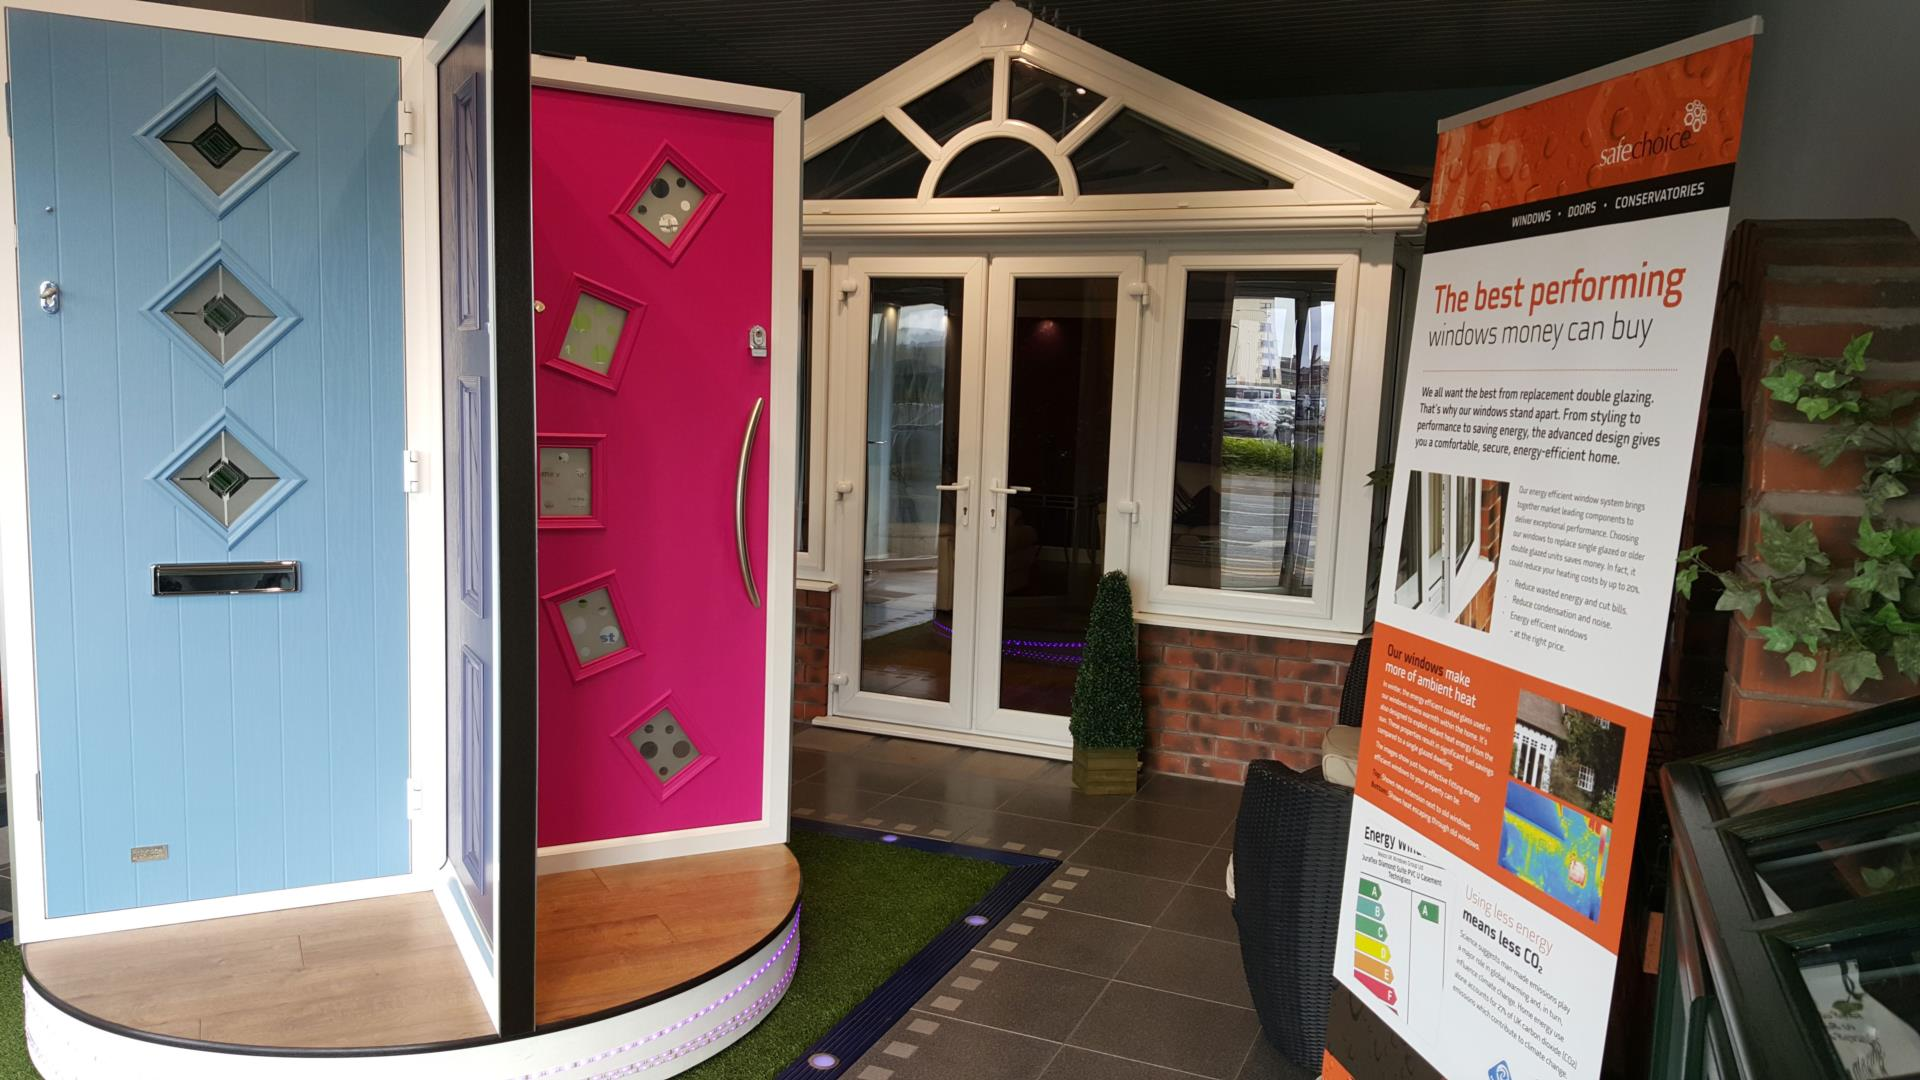 Our Composite Door Display Is Currently Being Replaced With A Door Emporium  Covering A Wide Range Of Door Styles And Glass Designs.